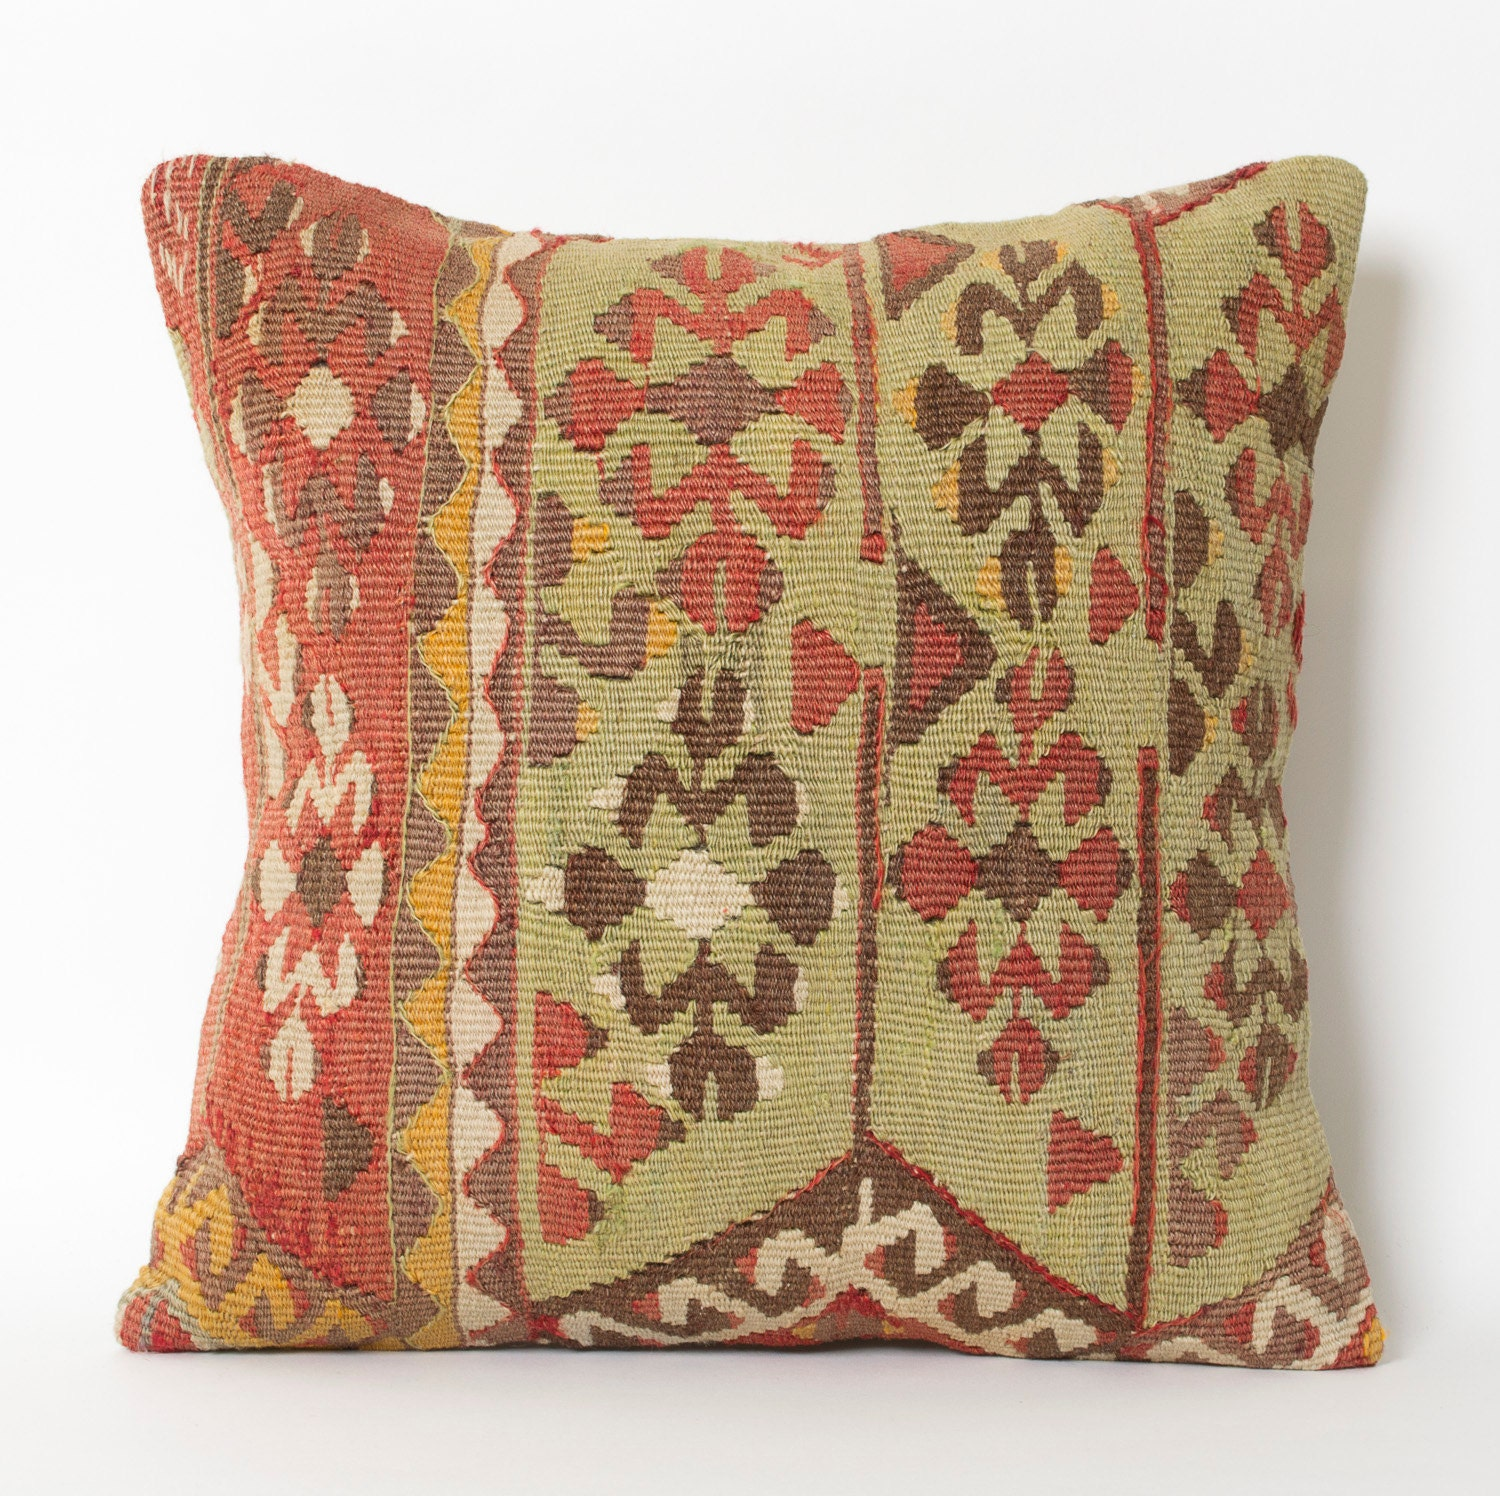 Southwestern Pillows And Rugs : Southwestern pillow couch pillows pillow case aztec native